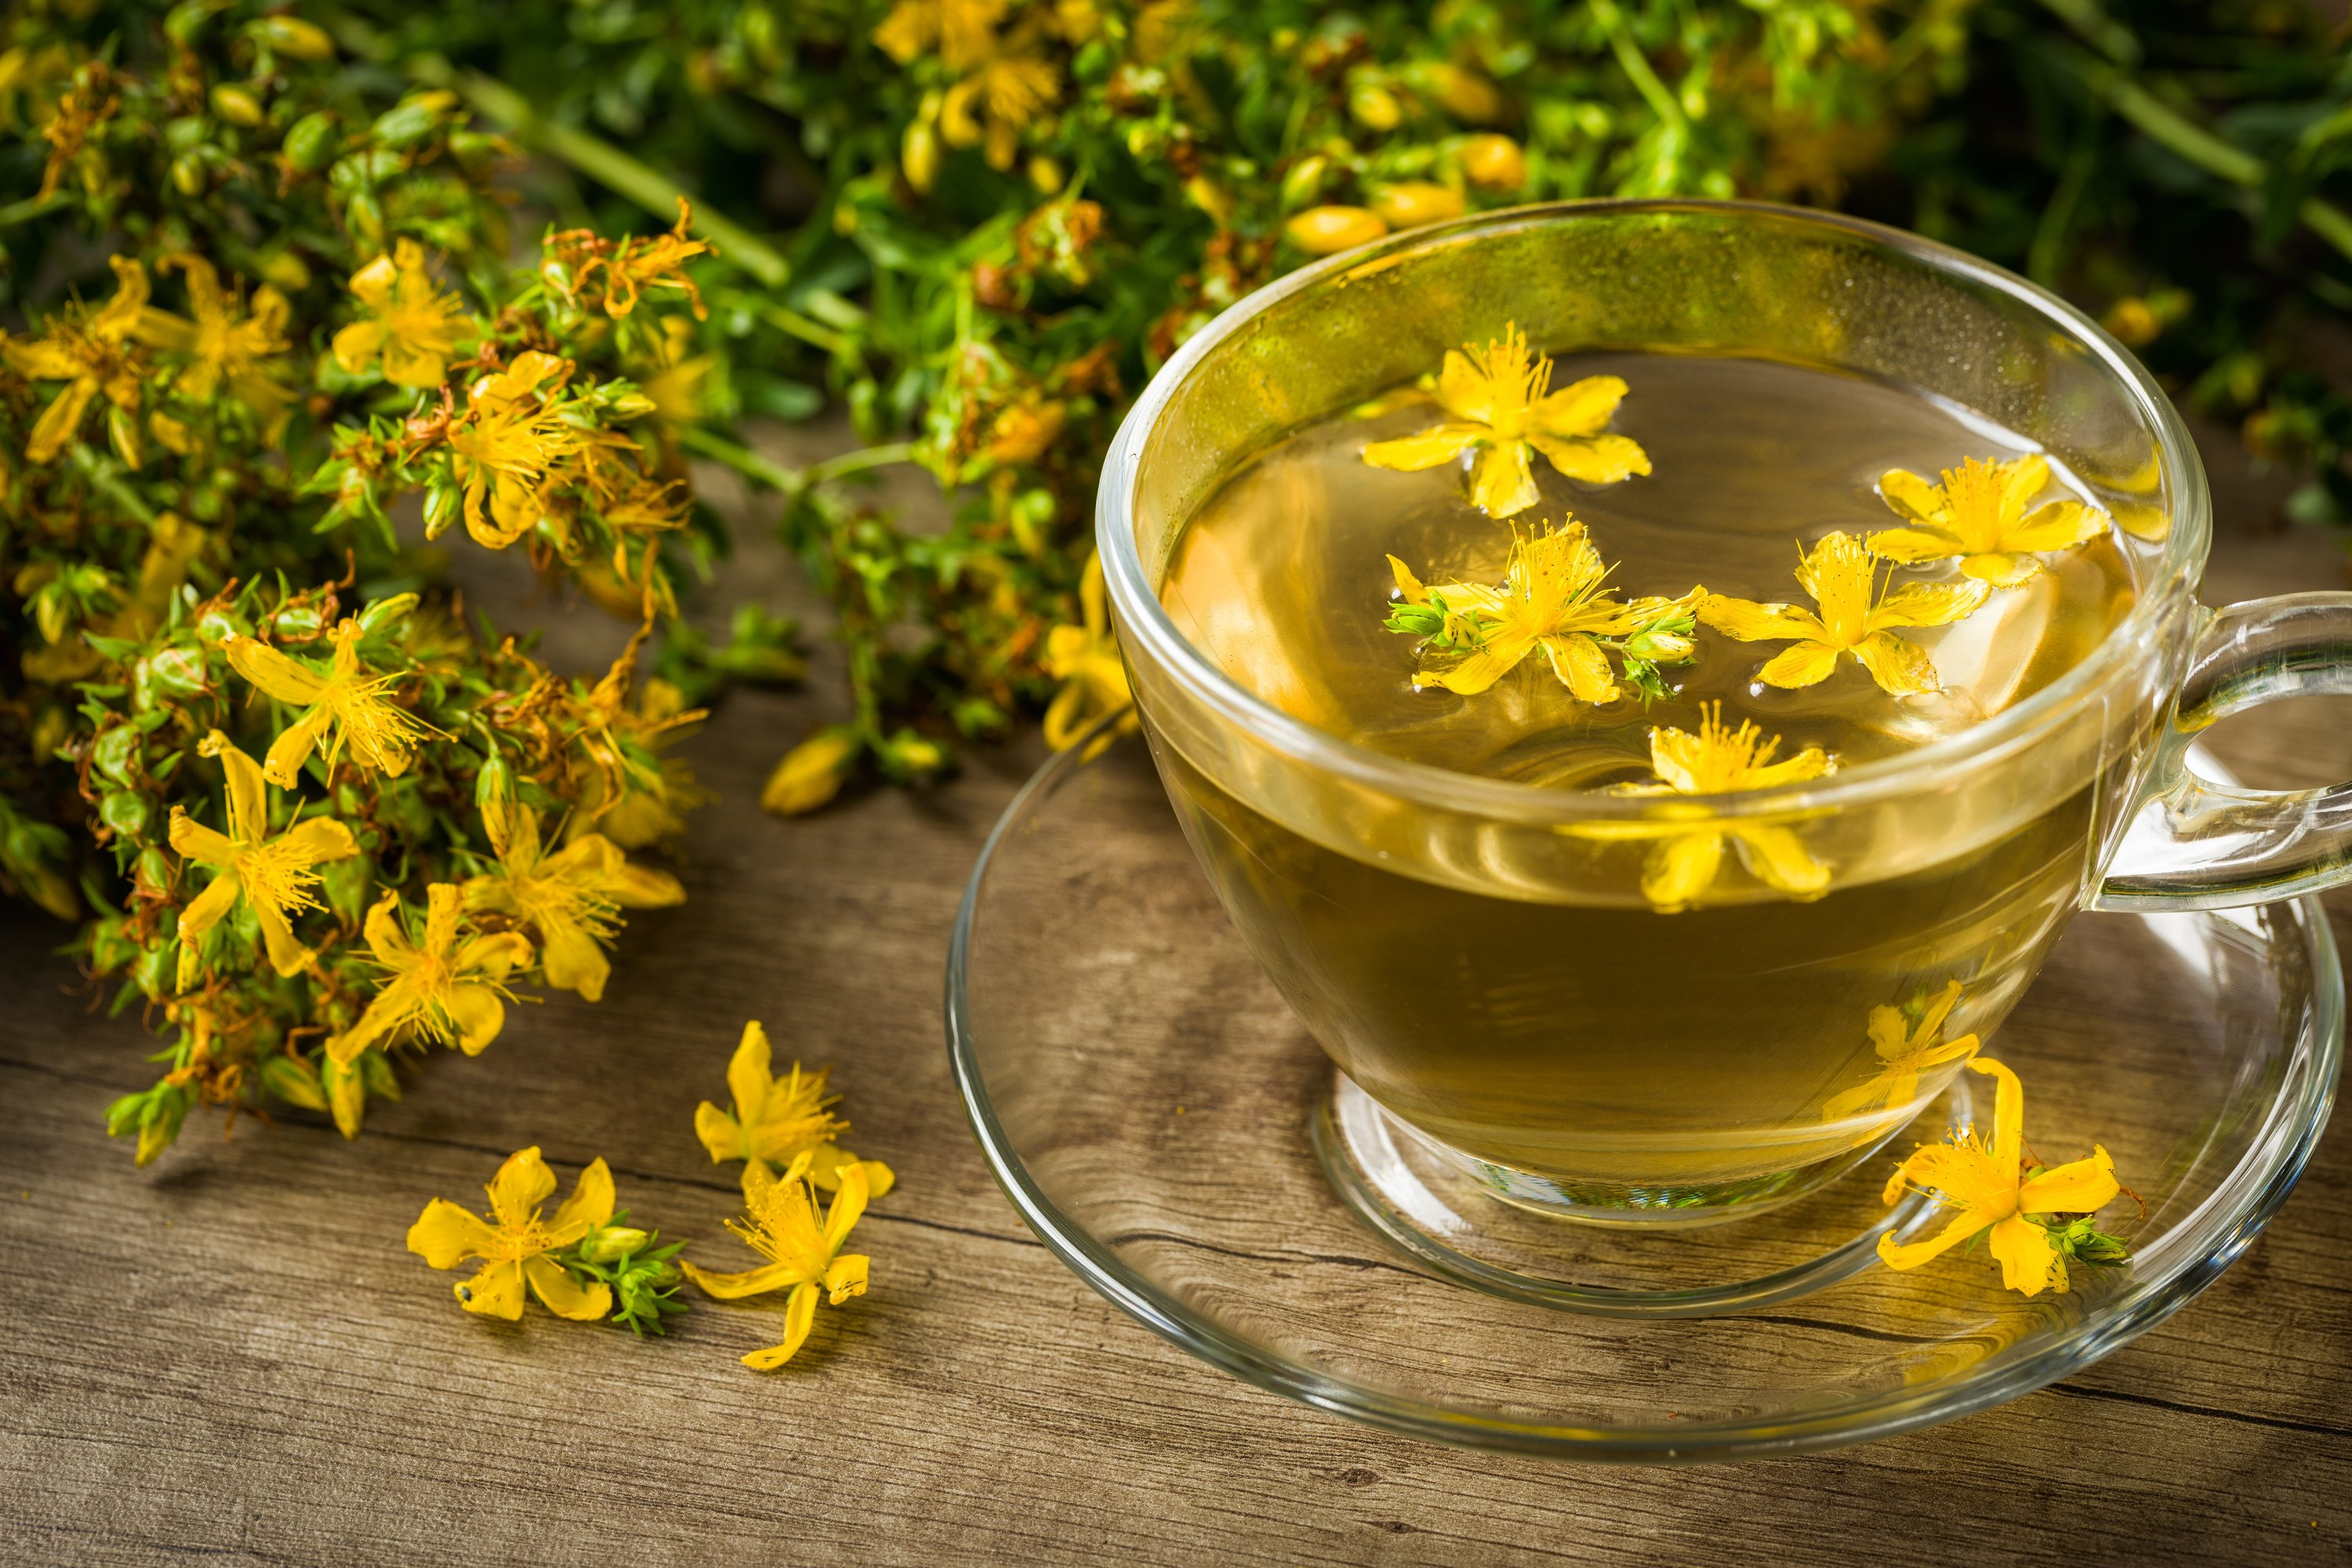 Made from the flowers of the St. John's Wort plant, this tea can alleviate symptoms of depression. (Shutterstock Photo)